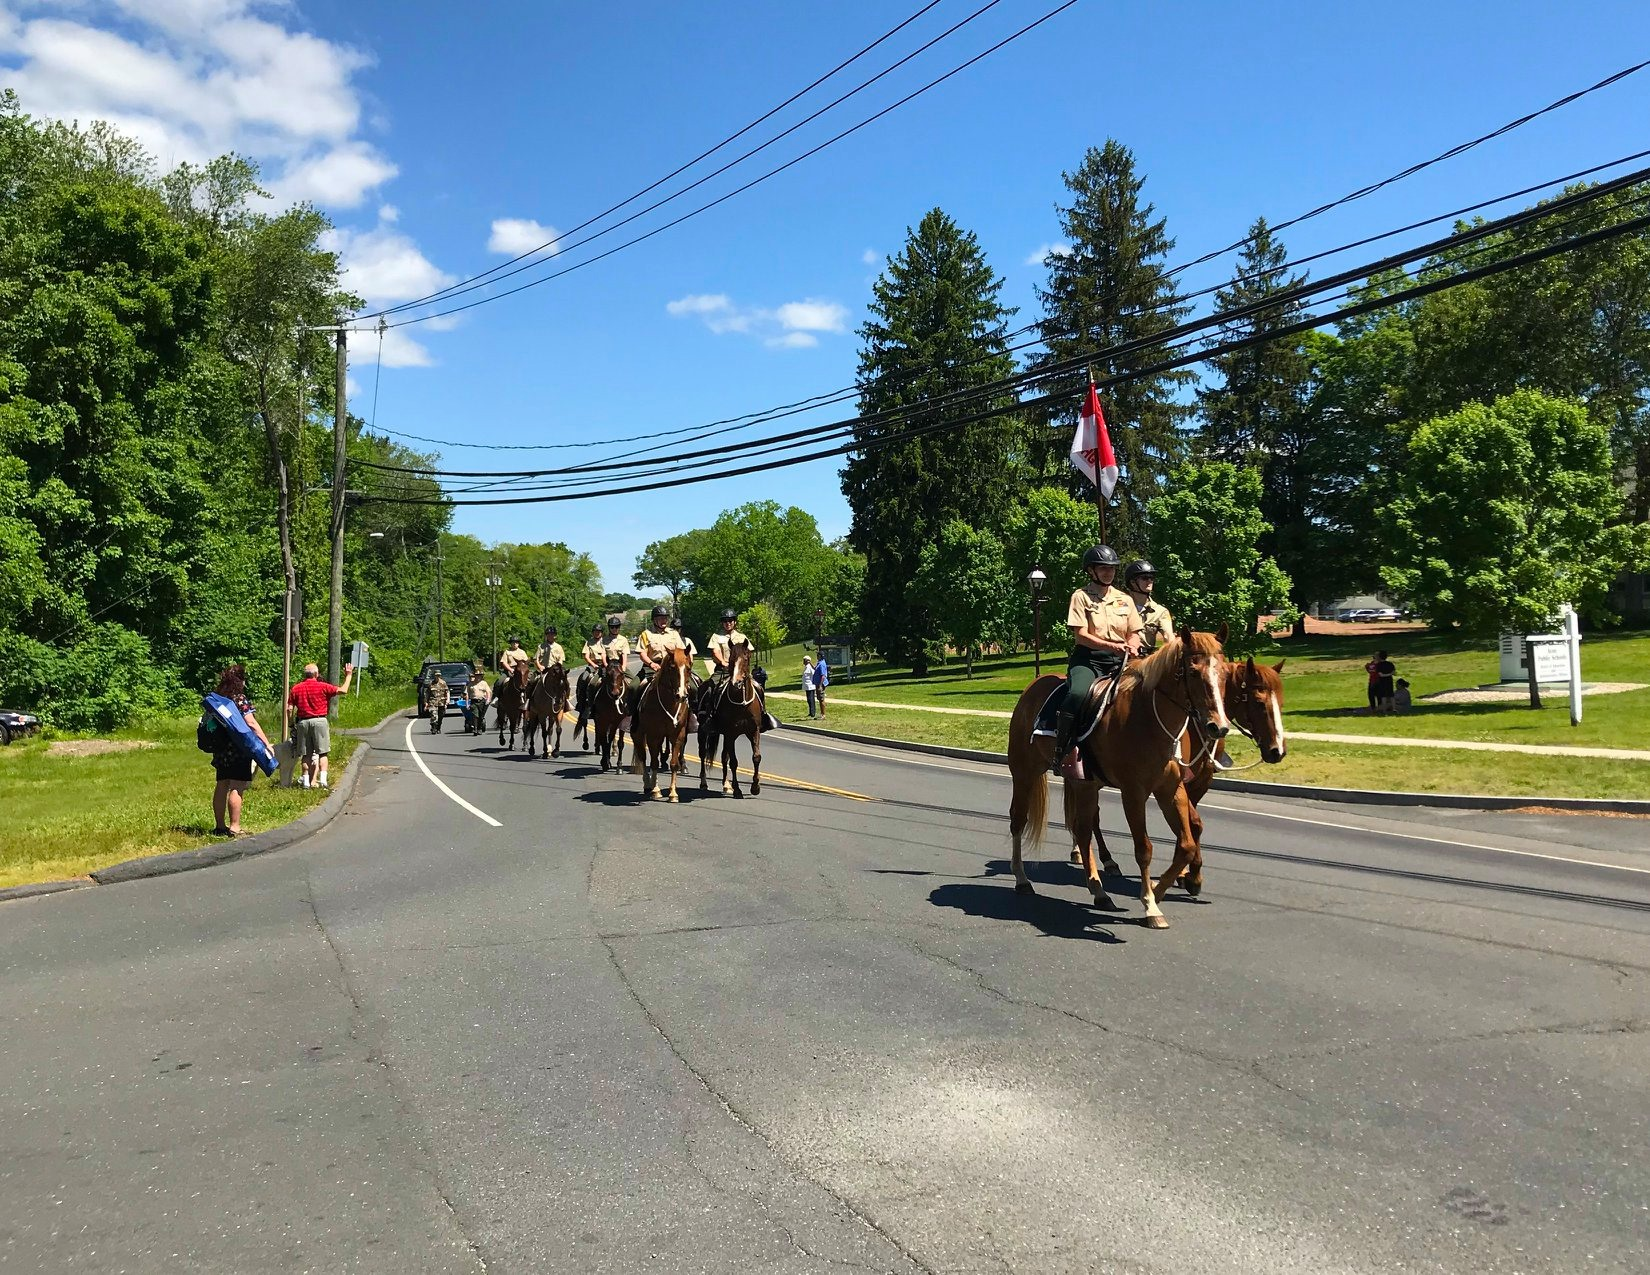 Image is of troopers riding horses in a parade.